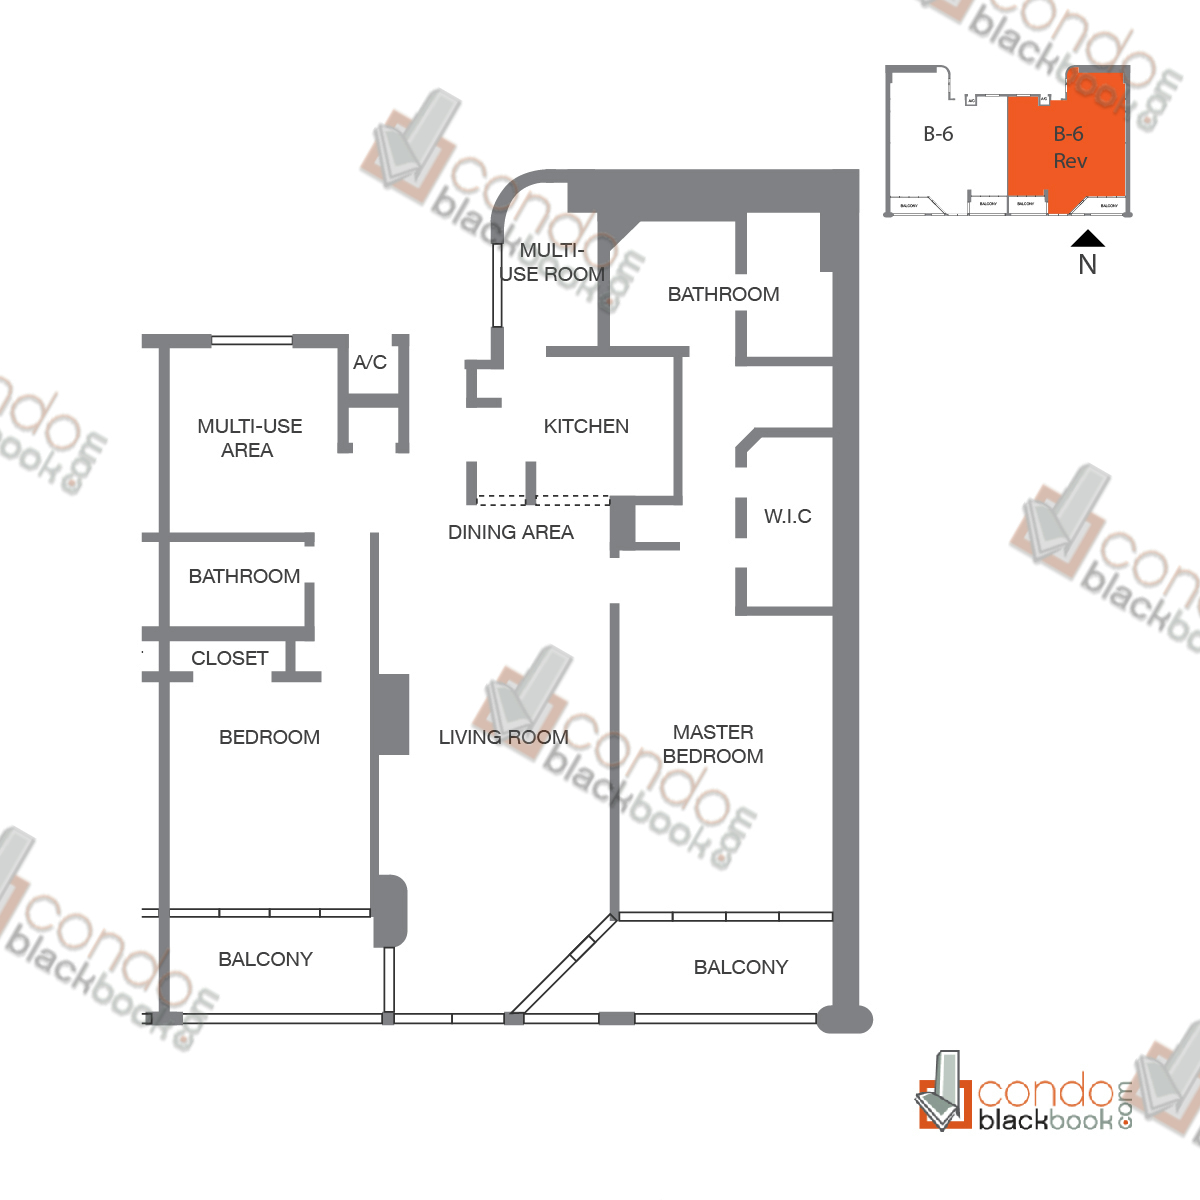 Floor plan for The Grand Arts & Entertainment District Miami, model Unit 55, line A-1055 to A-4255,  B-4155, D-3955, 2/2 bedrooms, 1,509 sq ft